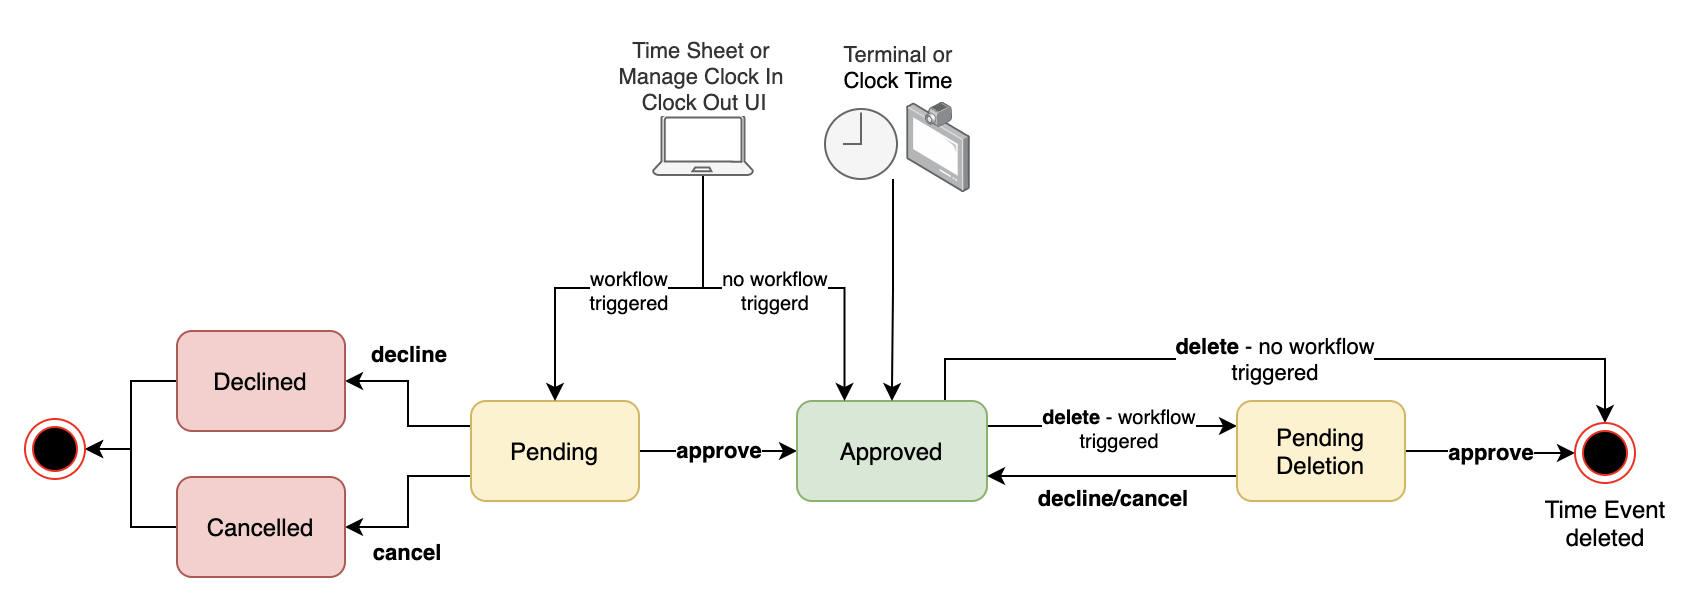 Workflow%20Status%20for%20Time%20Events